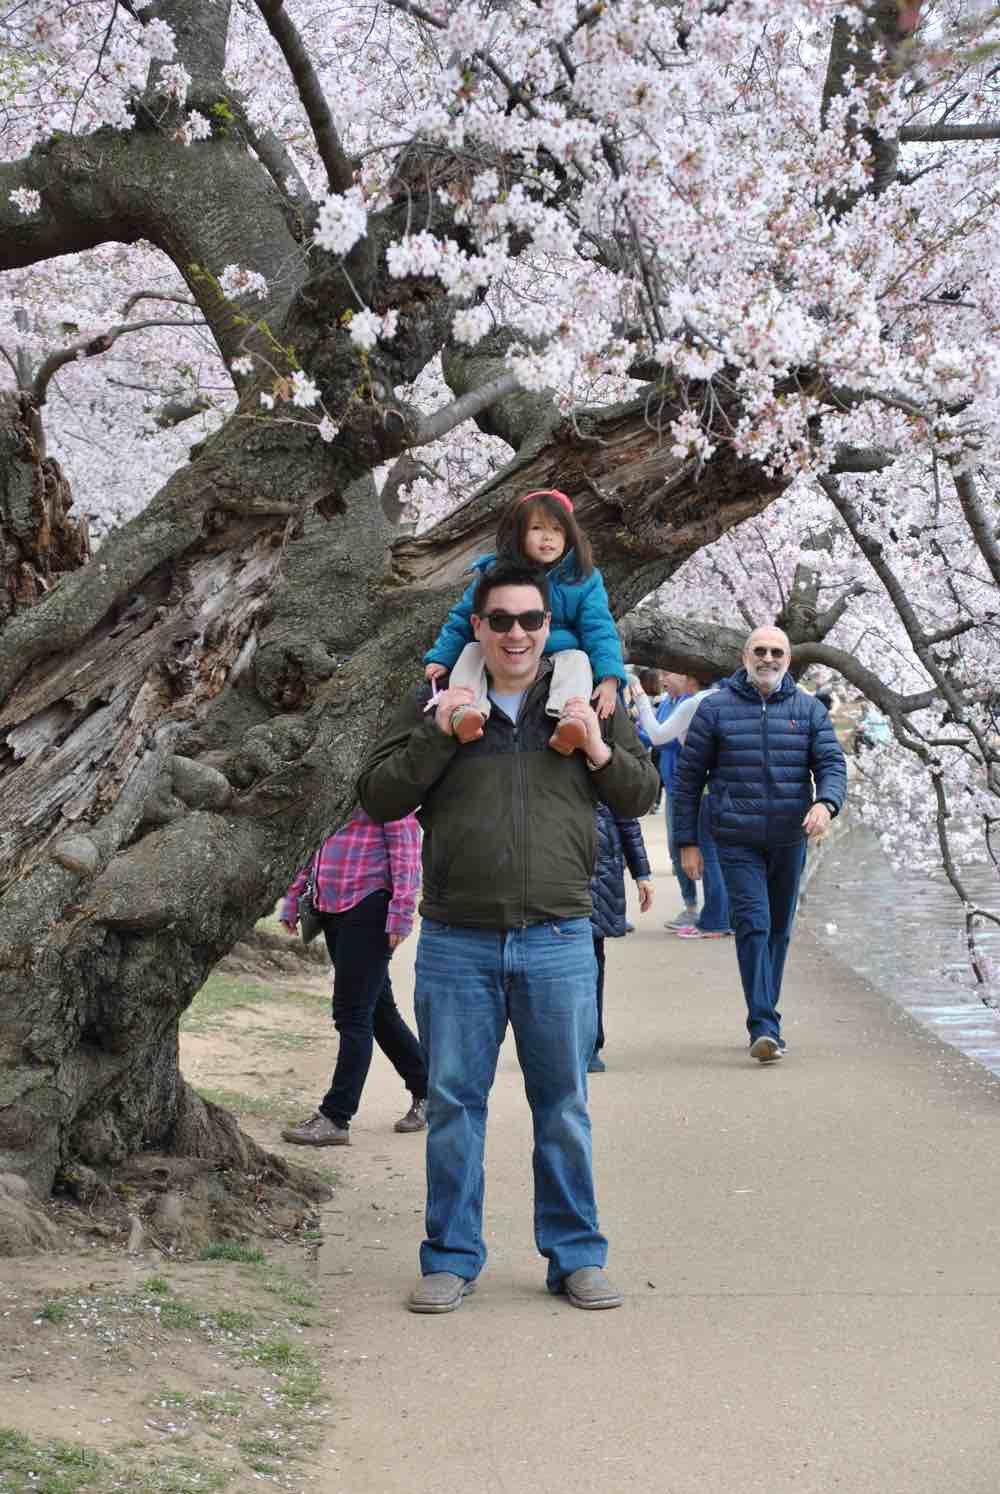 Ancient cherry trees around the Tidal Basin of Washington D.C. USA